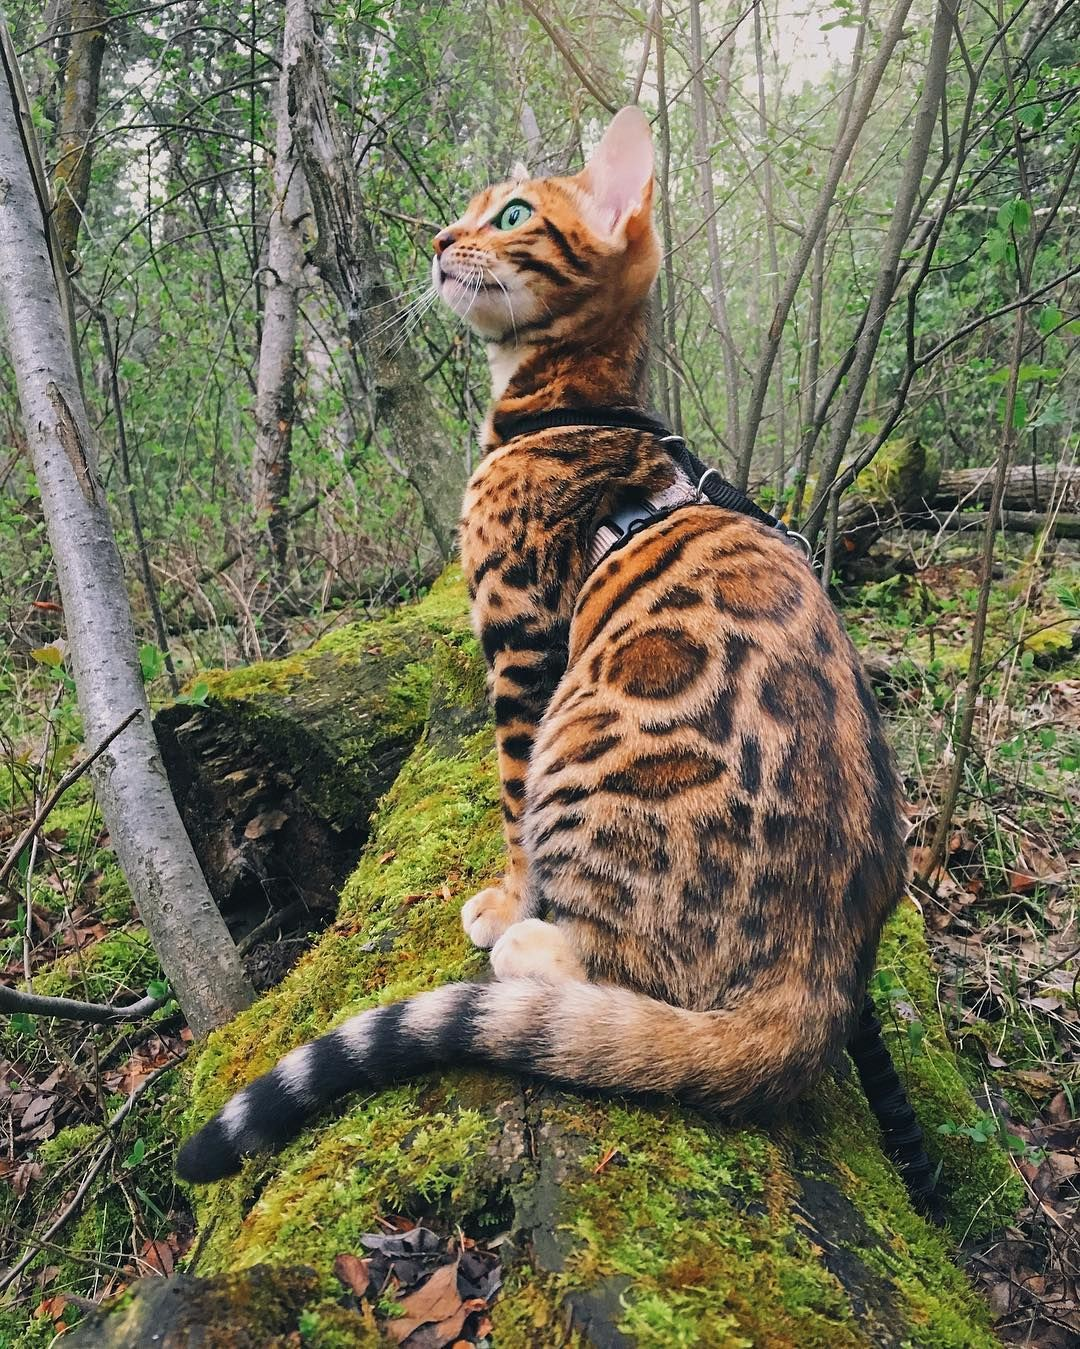 12 6k Likes 123 Comments Spirit Nectar Spiritnectar On Instagram My Little Forest Kitty S Beautiful Cats Bengal Cat Cute Cats And Kittens